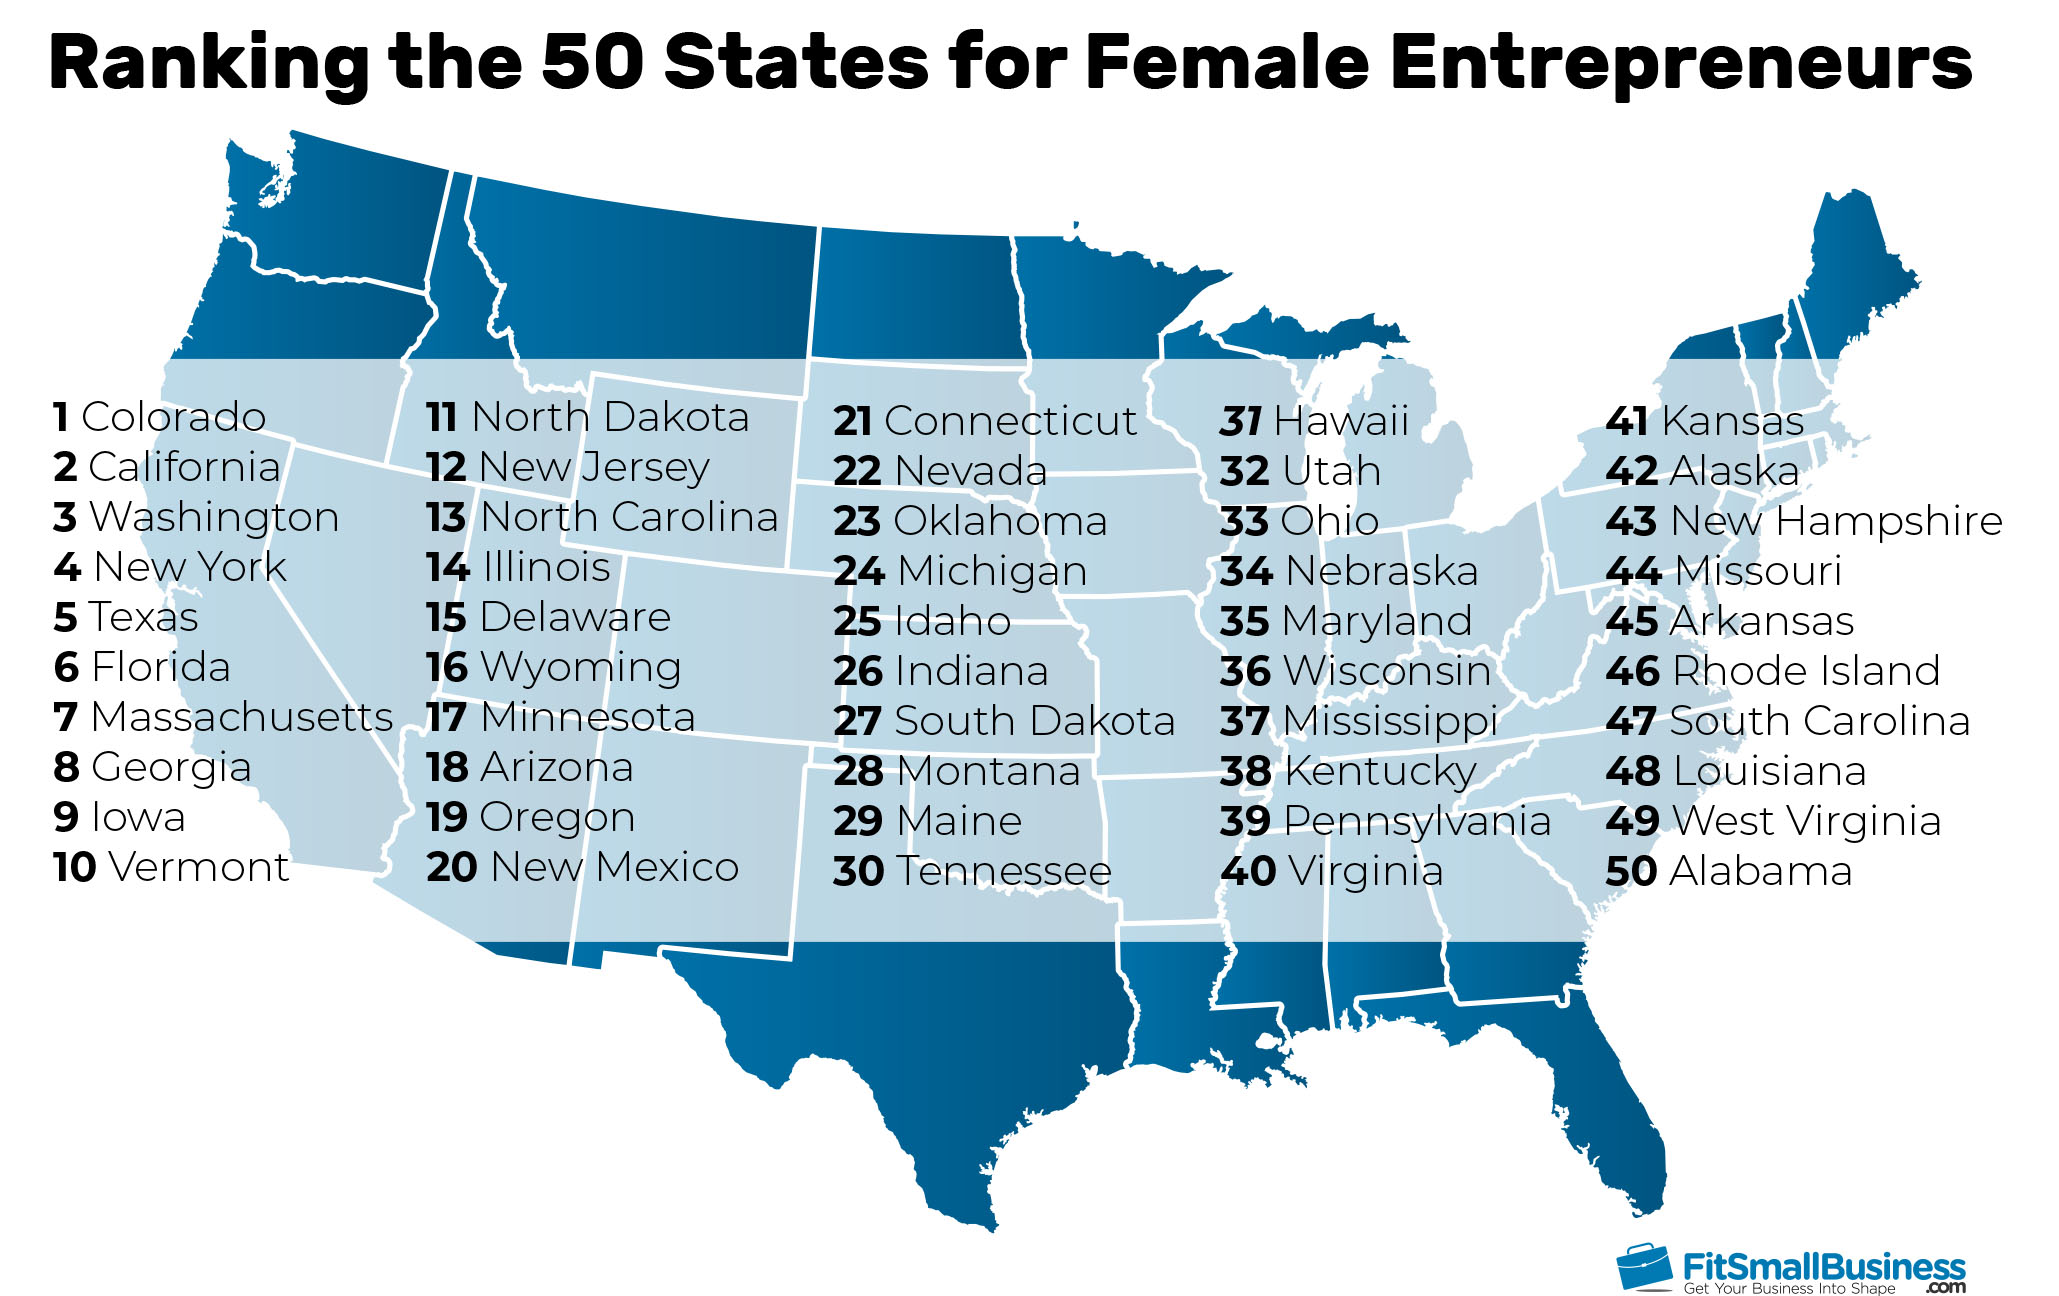 The Best States for Female Entrepreneurs 2020